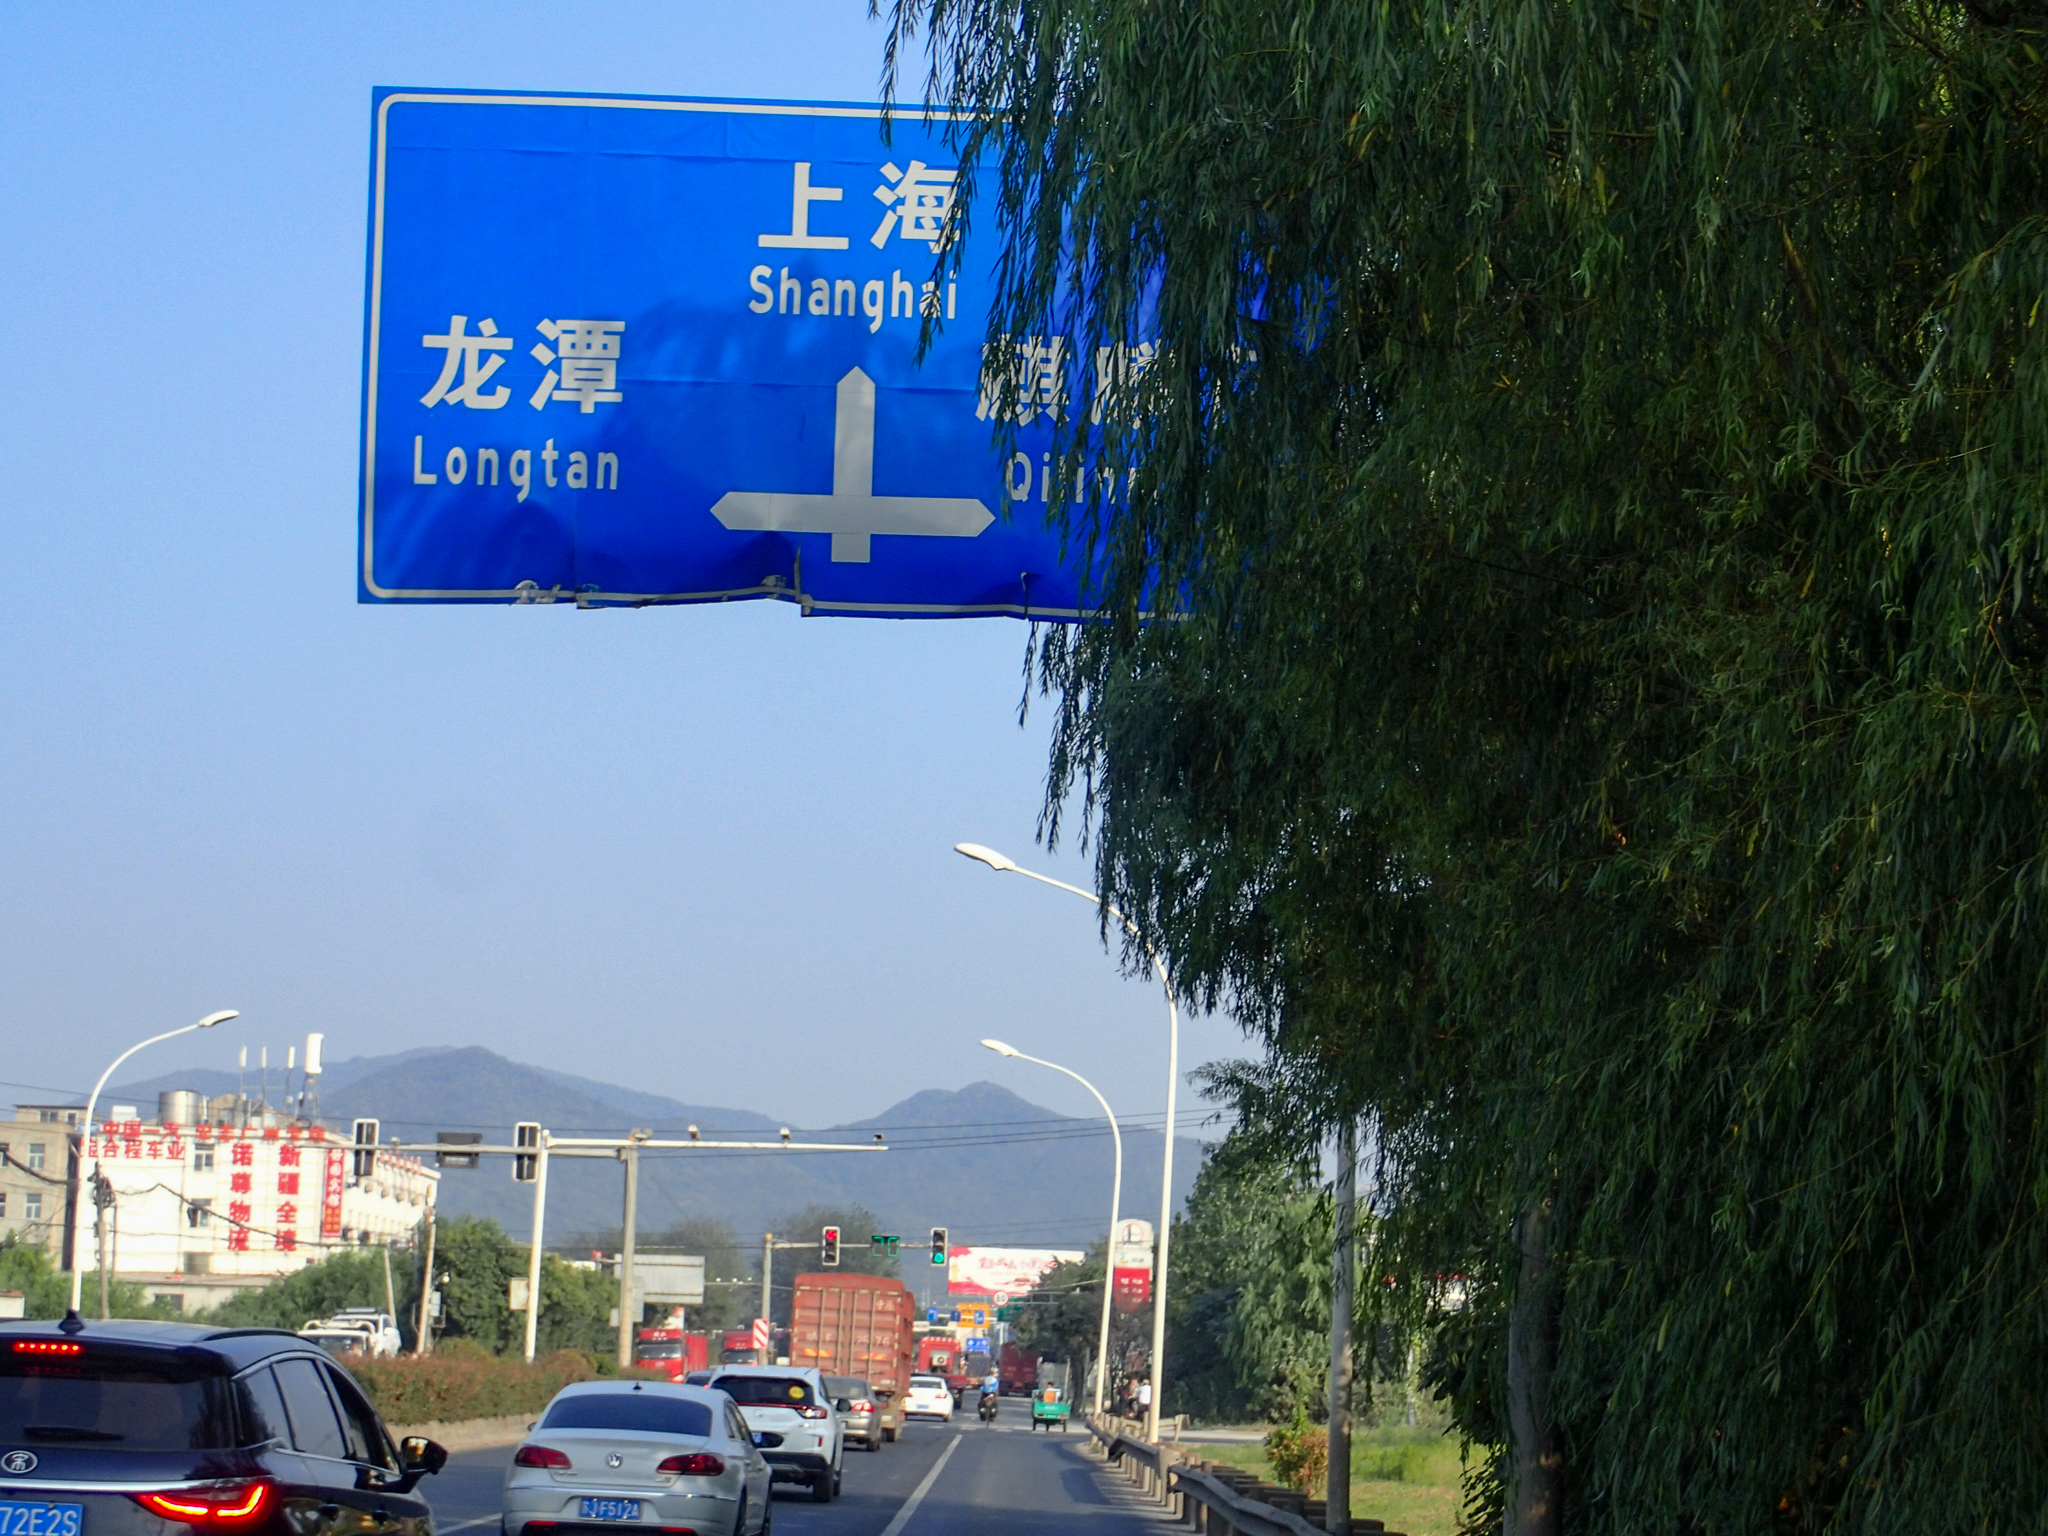 First signpost for Shanghai